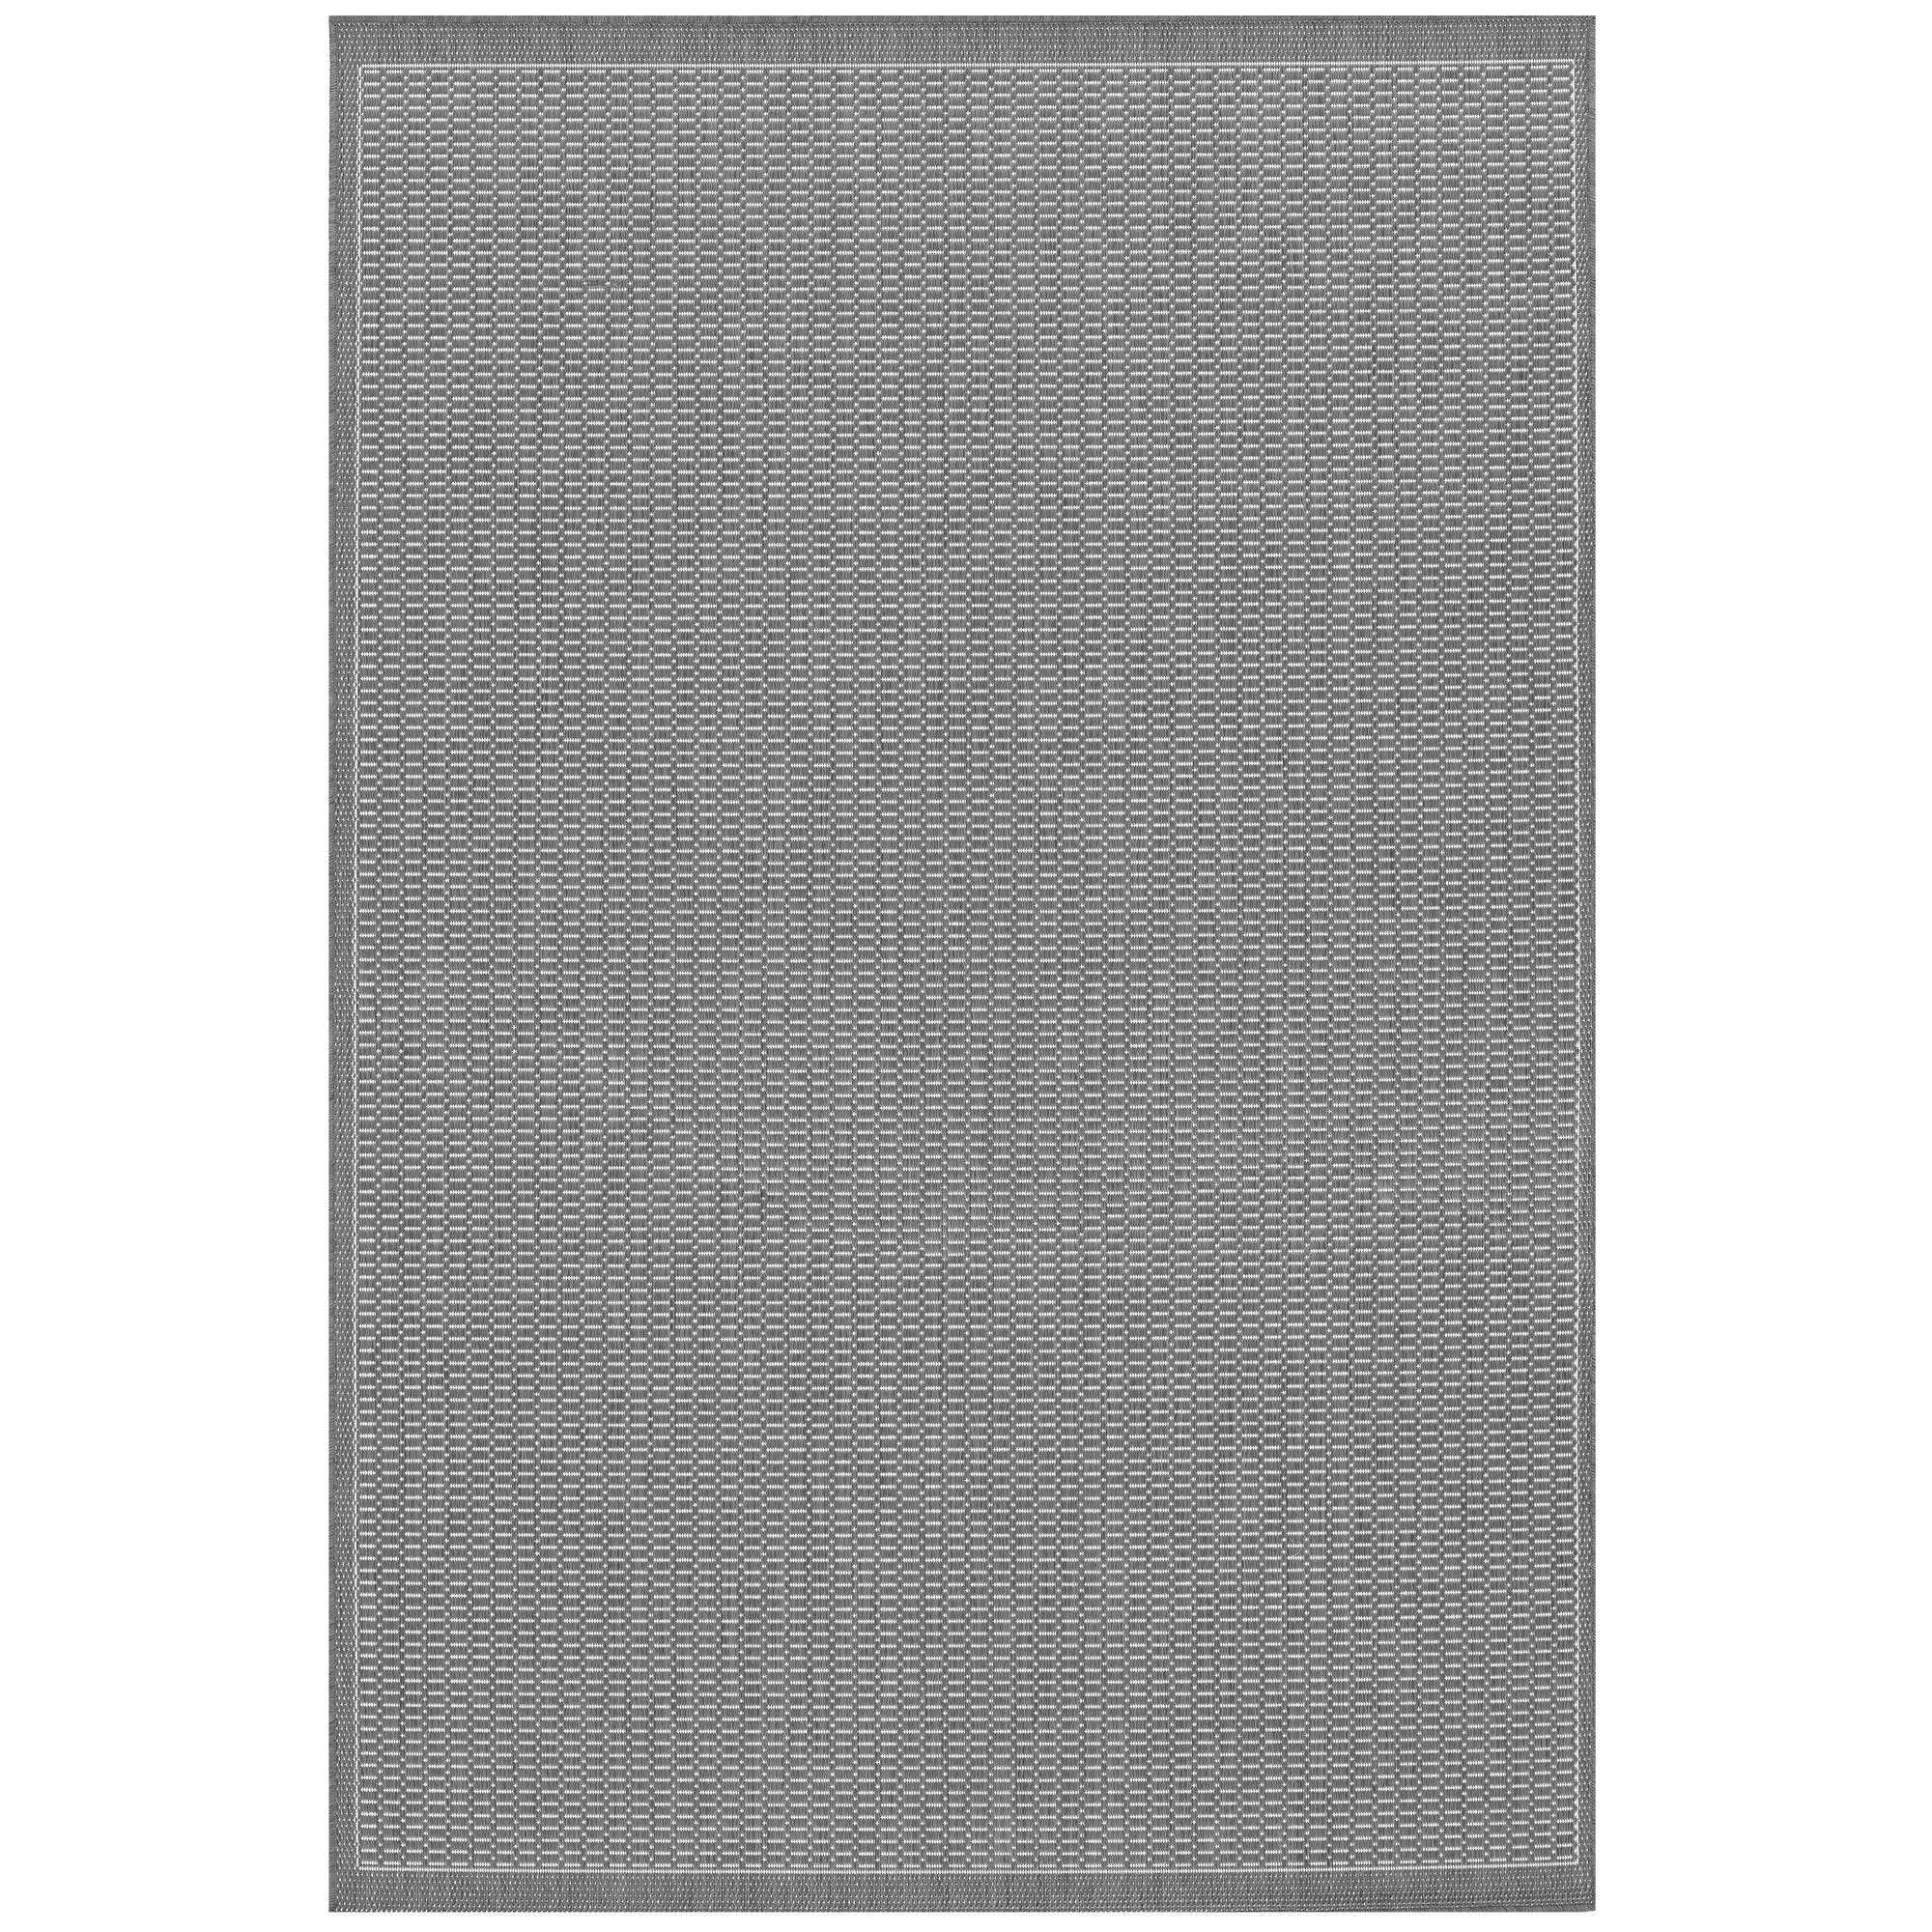 Ariadne Saddle Stitch Gray Indoor/Outdoor Area Rug & Reviews ...